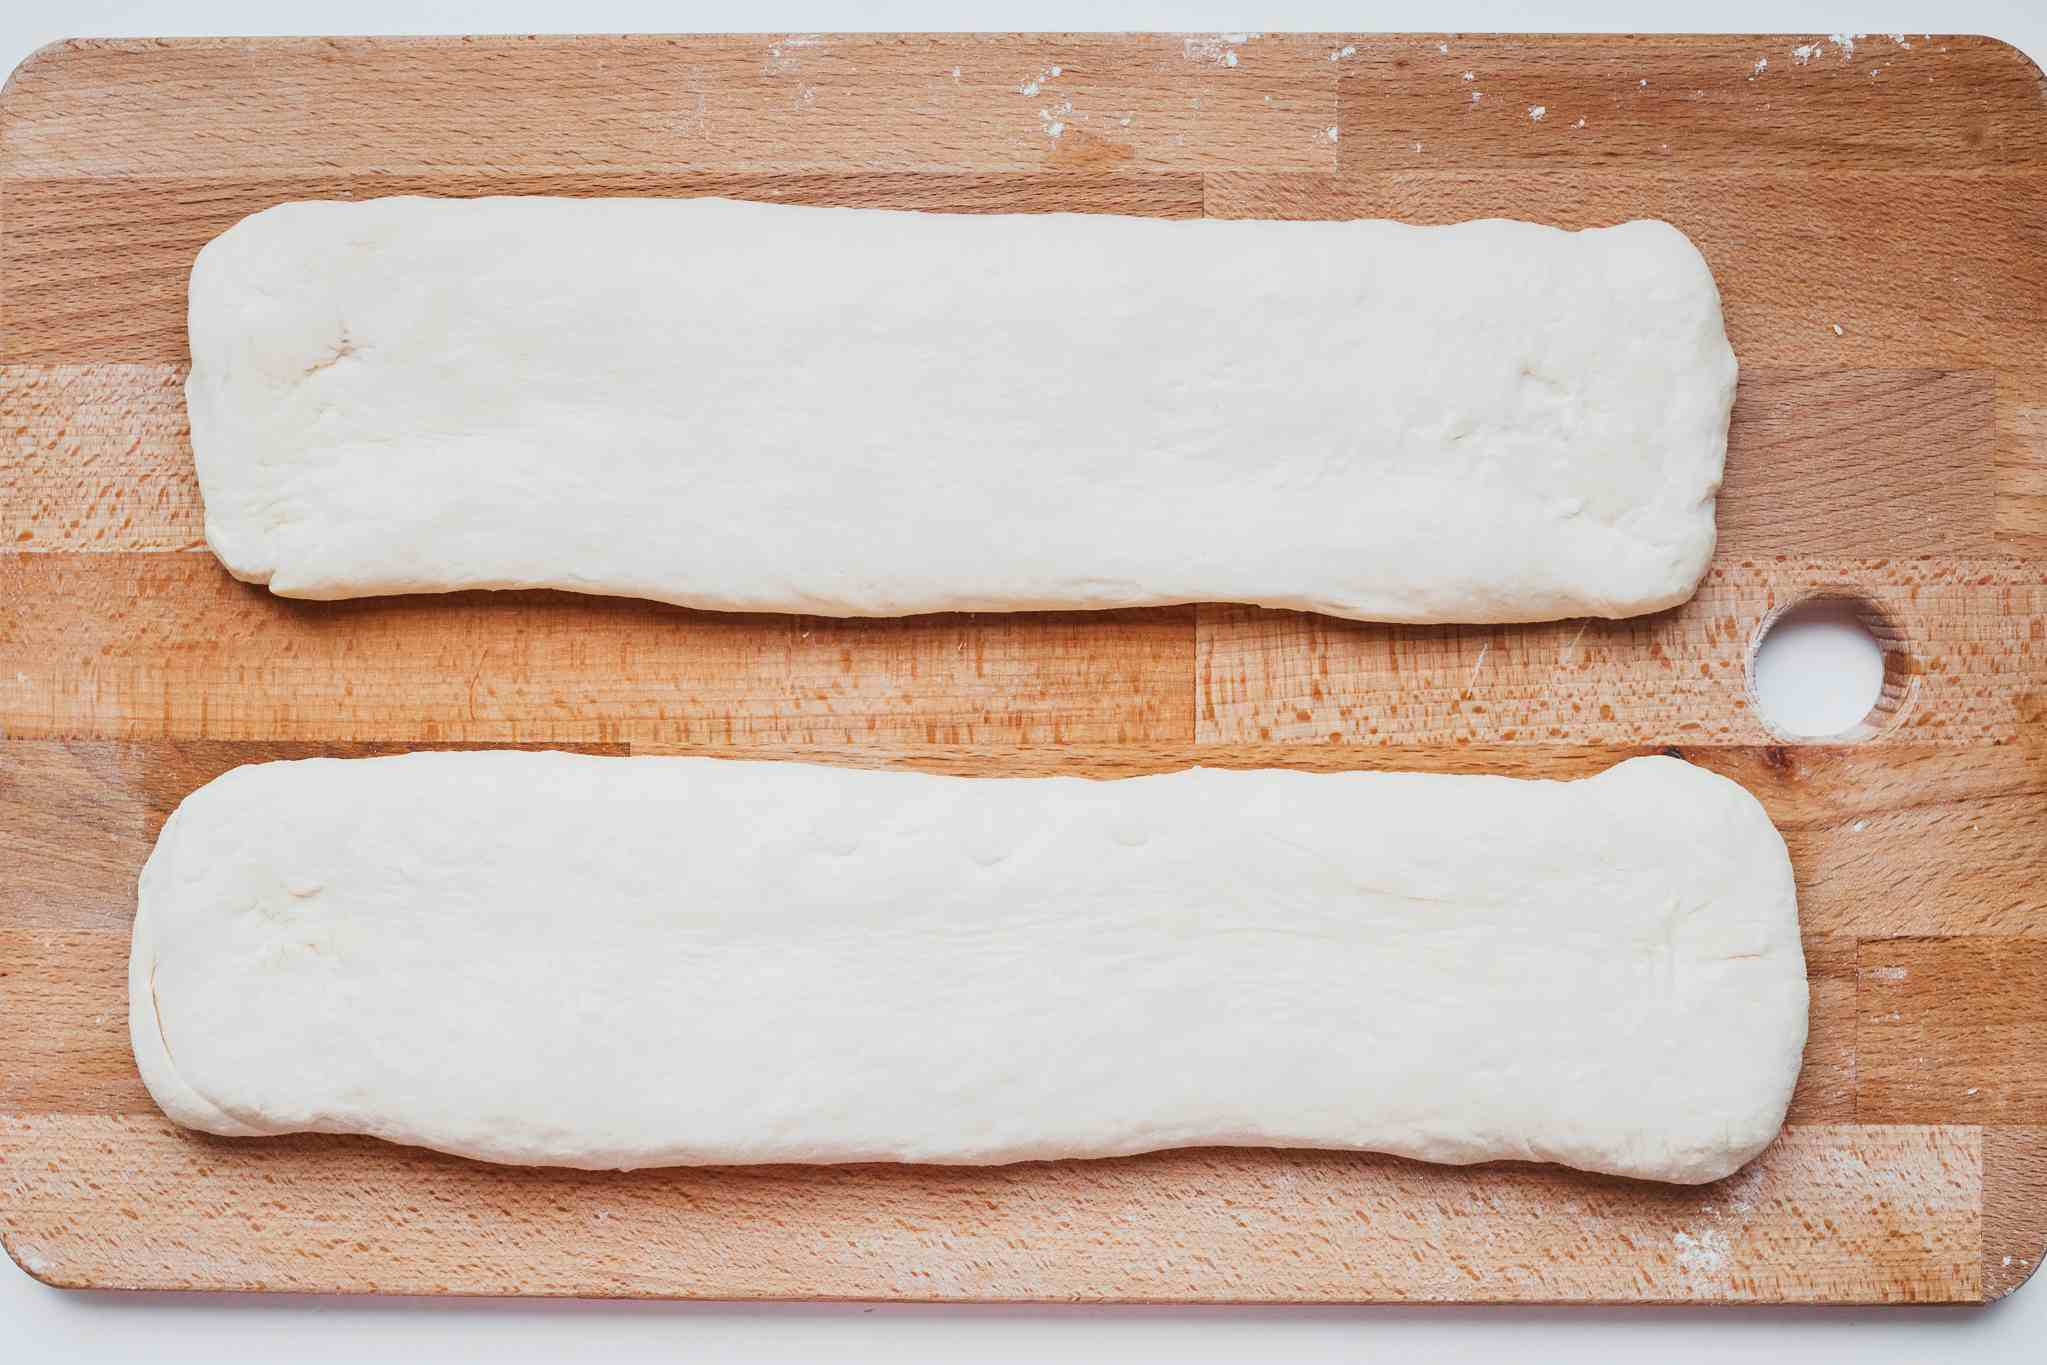 Two rectangles of dough